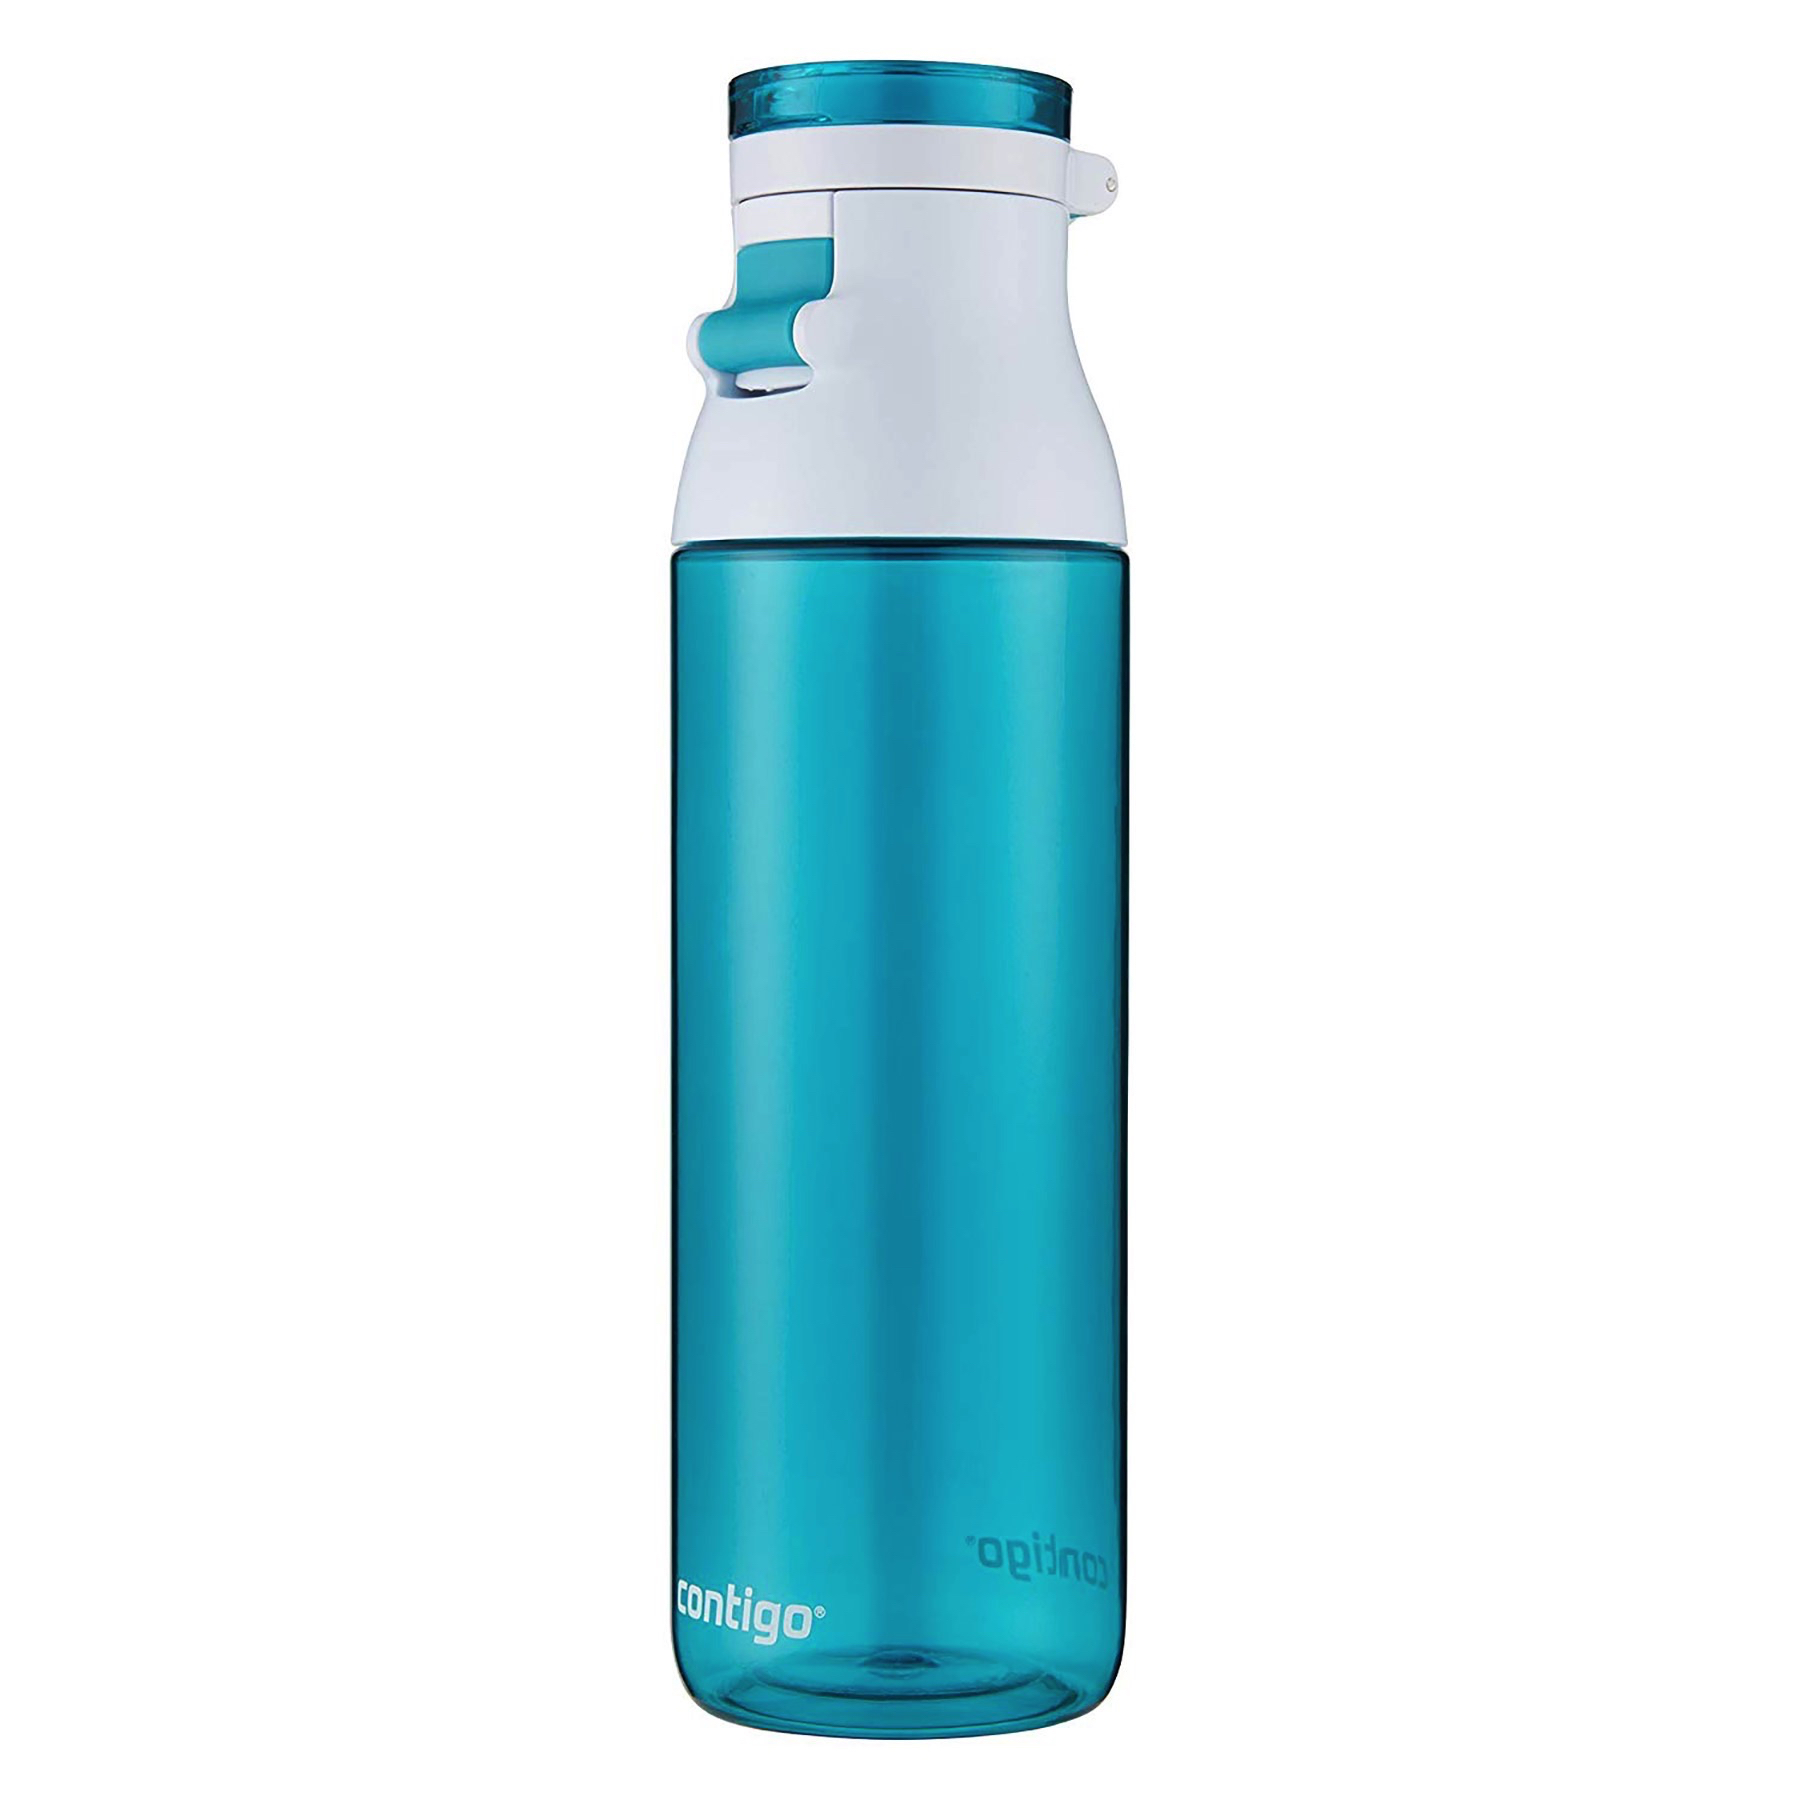 maxin 5 Litres Collapsible Water Container,BPA Free Plastic Water Carrier Water